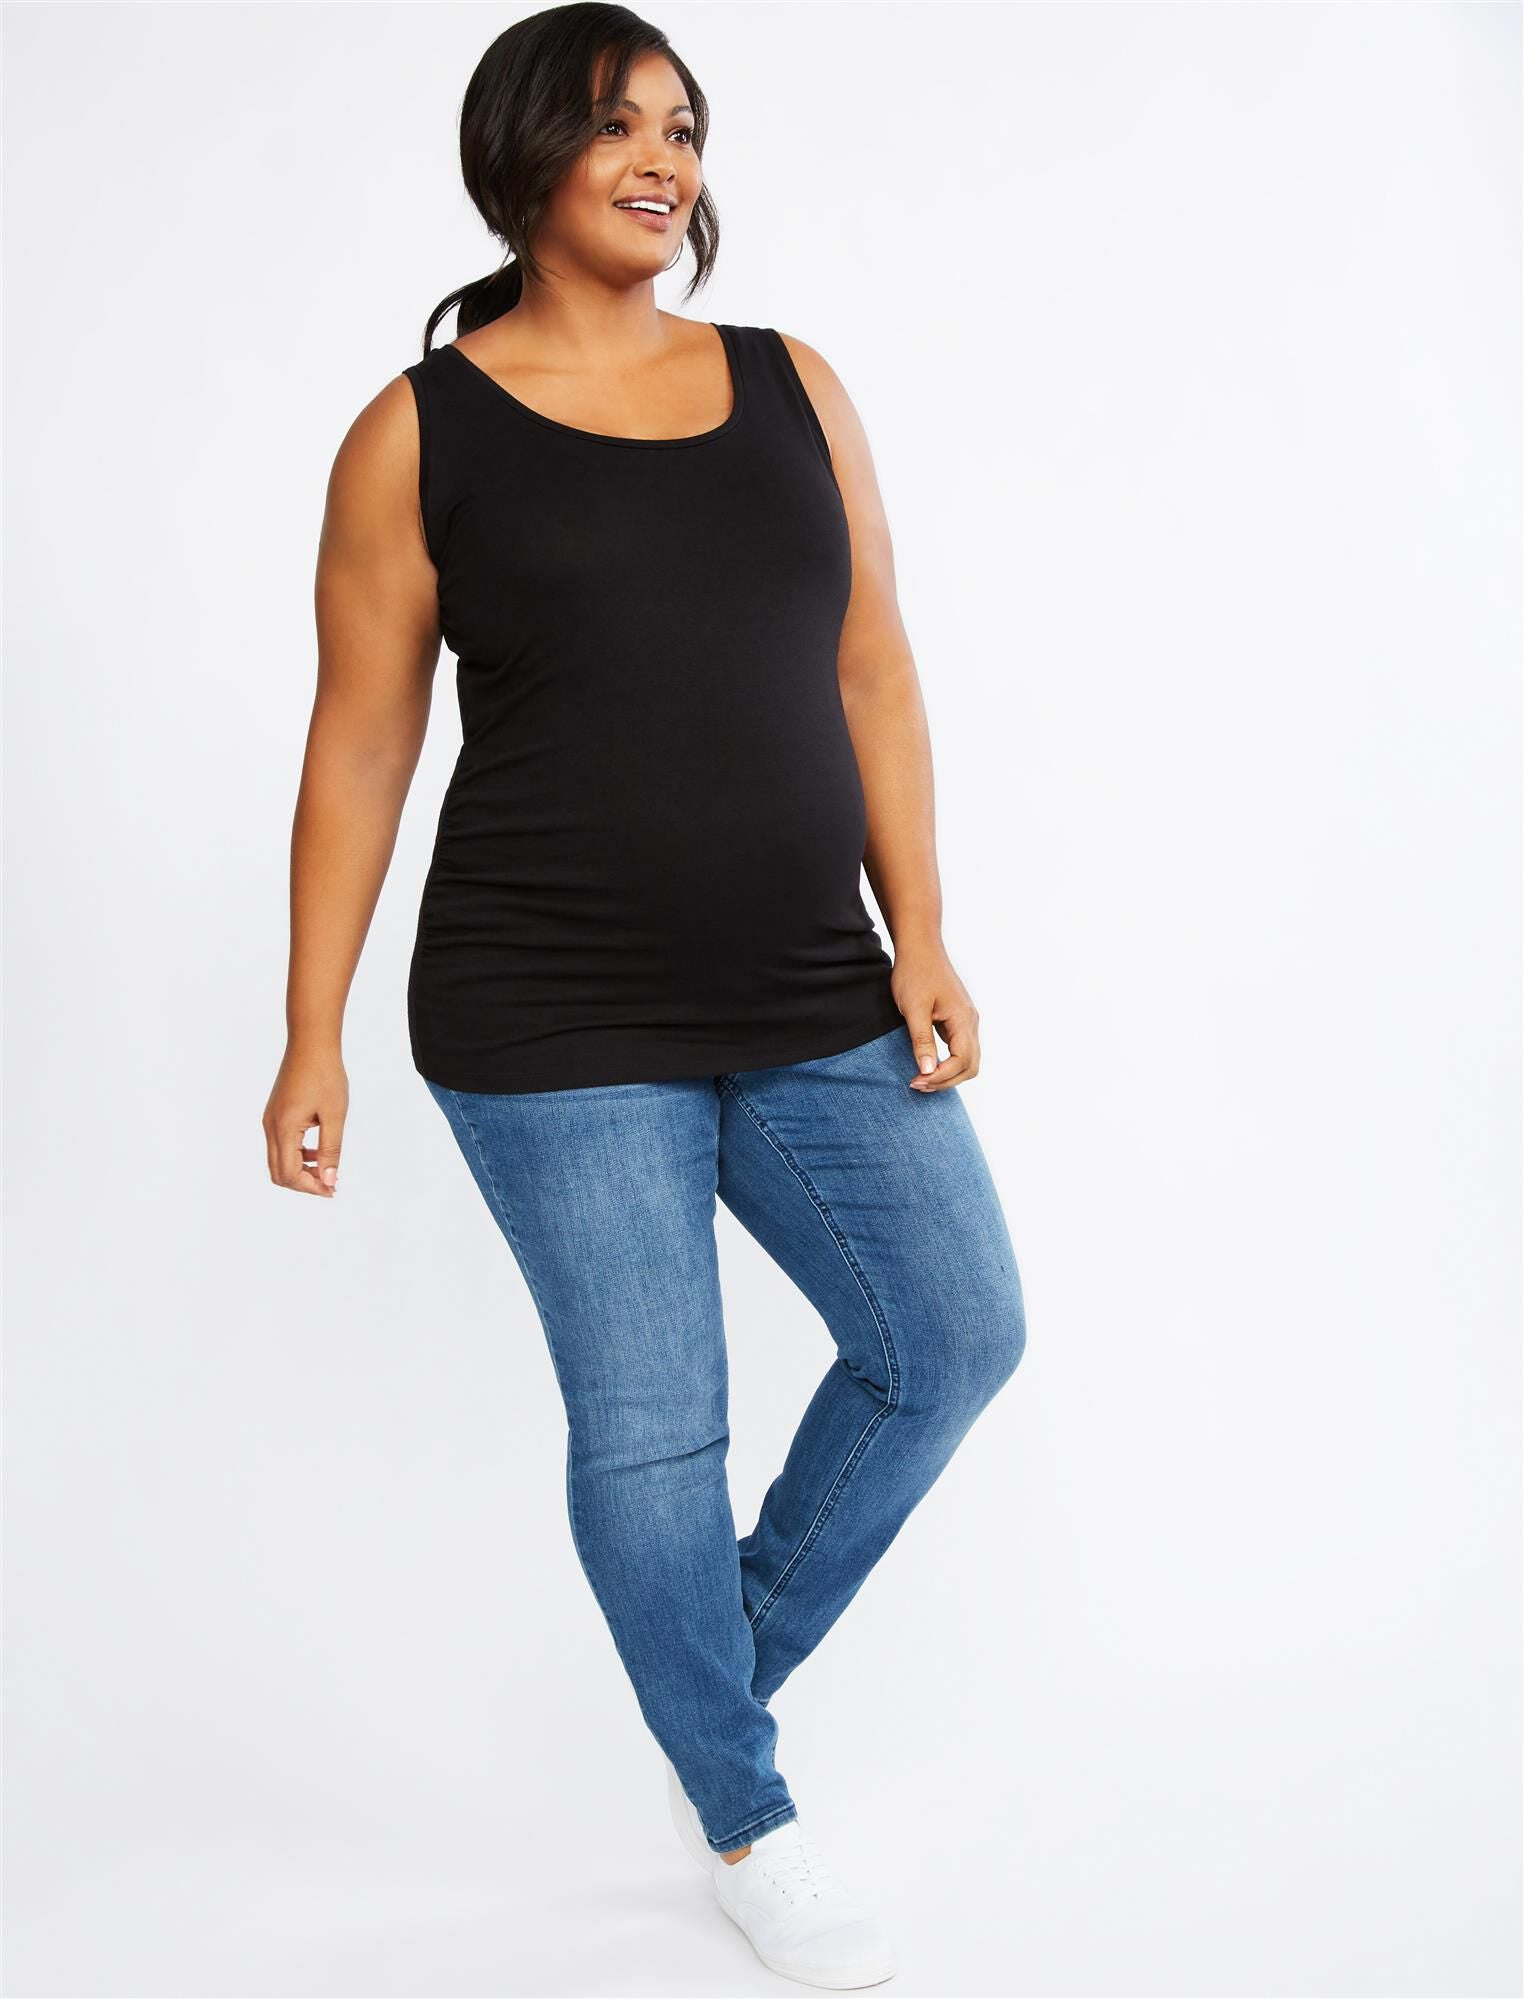 Sale Plus Size Maternity Clothes Clearance Motherhood Maternity